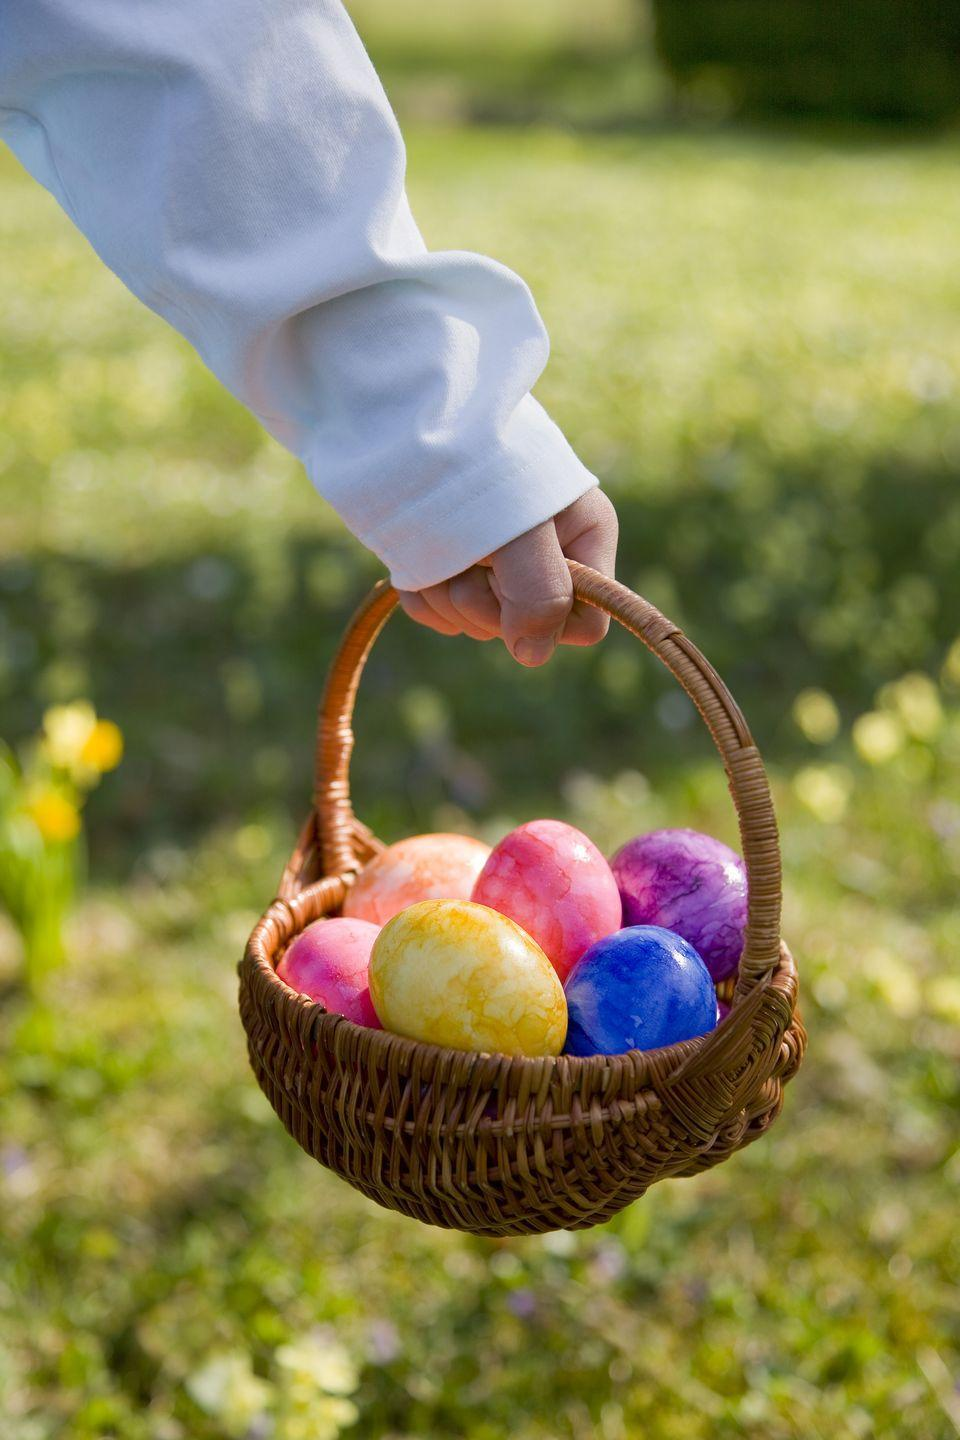 """<p>Lead your kids to the hidden eggs by creating a treasure map with clues that look like objects in your backyard. </p><p><strong>Get the tutorial at <a href=""""https://childhood101.com/literacy-spot-15-5-easter-egg-hunt-ideas/"""" rel=""""nofollow noopener"""" target=""""_blank"""" data-ylk=""""slk:Childhood 101"""" class=""""link rapid-noclick-resp"""">Childhood 101</a>.</strong></p><p><strong><strong><strong><a class=""""link rapid-noclick-resp"""" href=""""https://www.amazon.com/Prextex-Easter-Eggs-Assortment-288/dp/B06XFWF7JR/?tag=syn-yahoo-20&ascsubtag=%5Bartid%7C10050.g.4083%5Bsrc%7Cyahoo-us"""" rel=""""nofollow noopener"""" target=""""_blank"""" data-ylk=""""slk:SHOP EASTER EGGS"""">SHOP EASTER EGGS</a></strong></strong><br></strong></p>"""